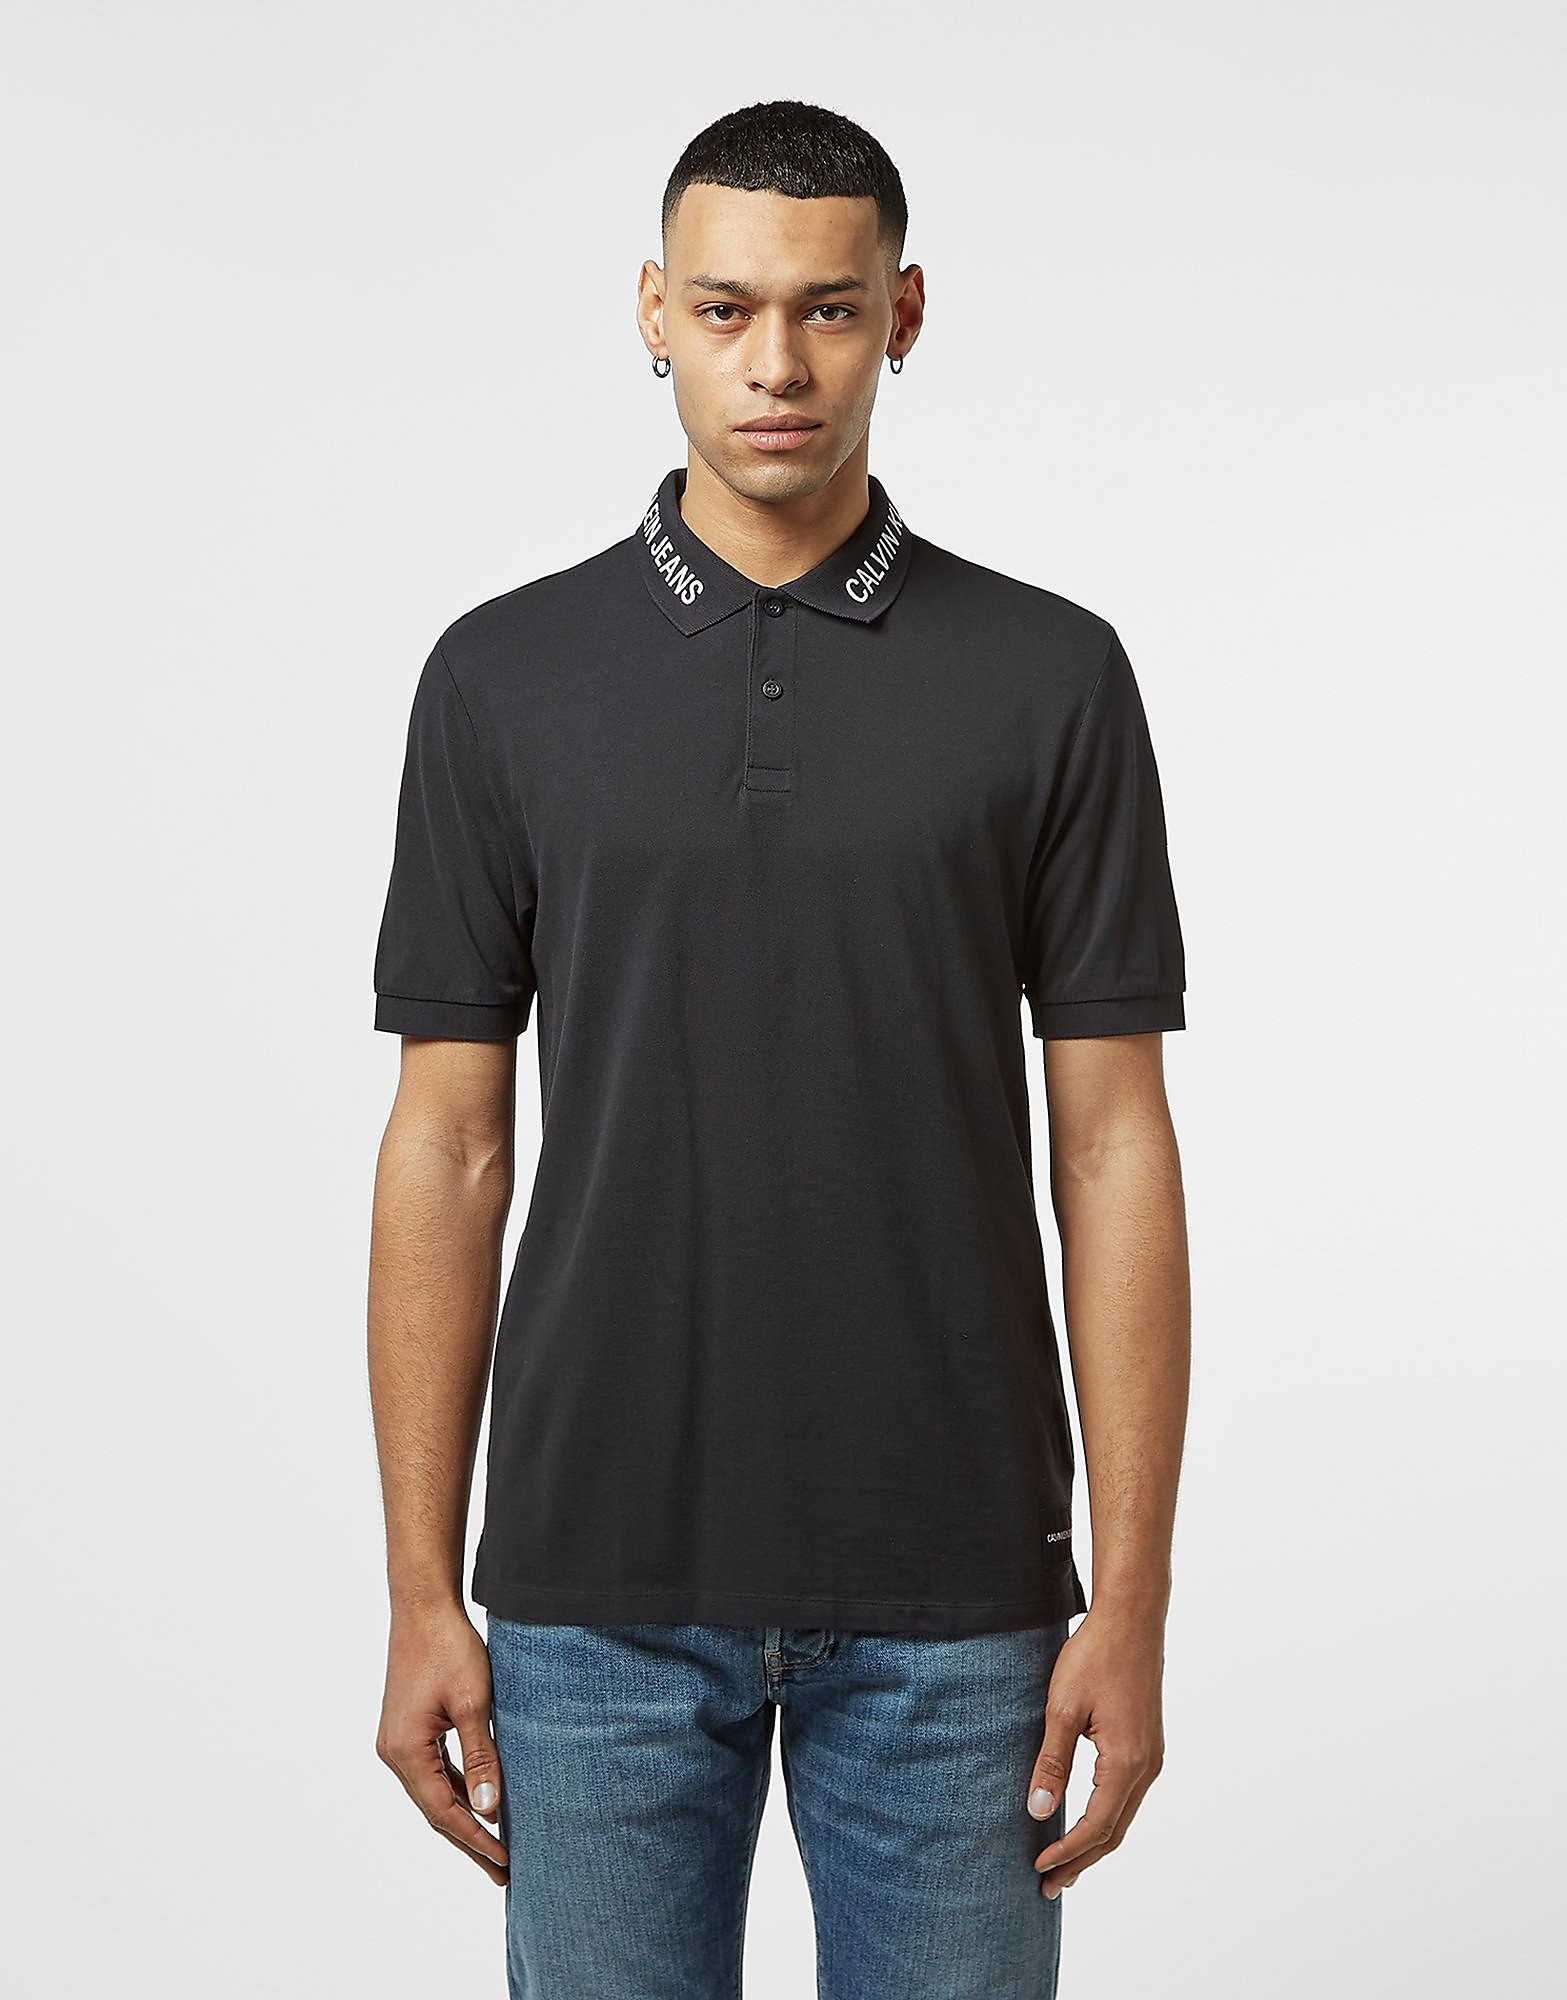 Calvin Klein Branded Collar Short Sleeve Polo Shirt